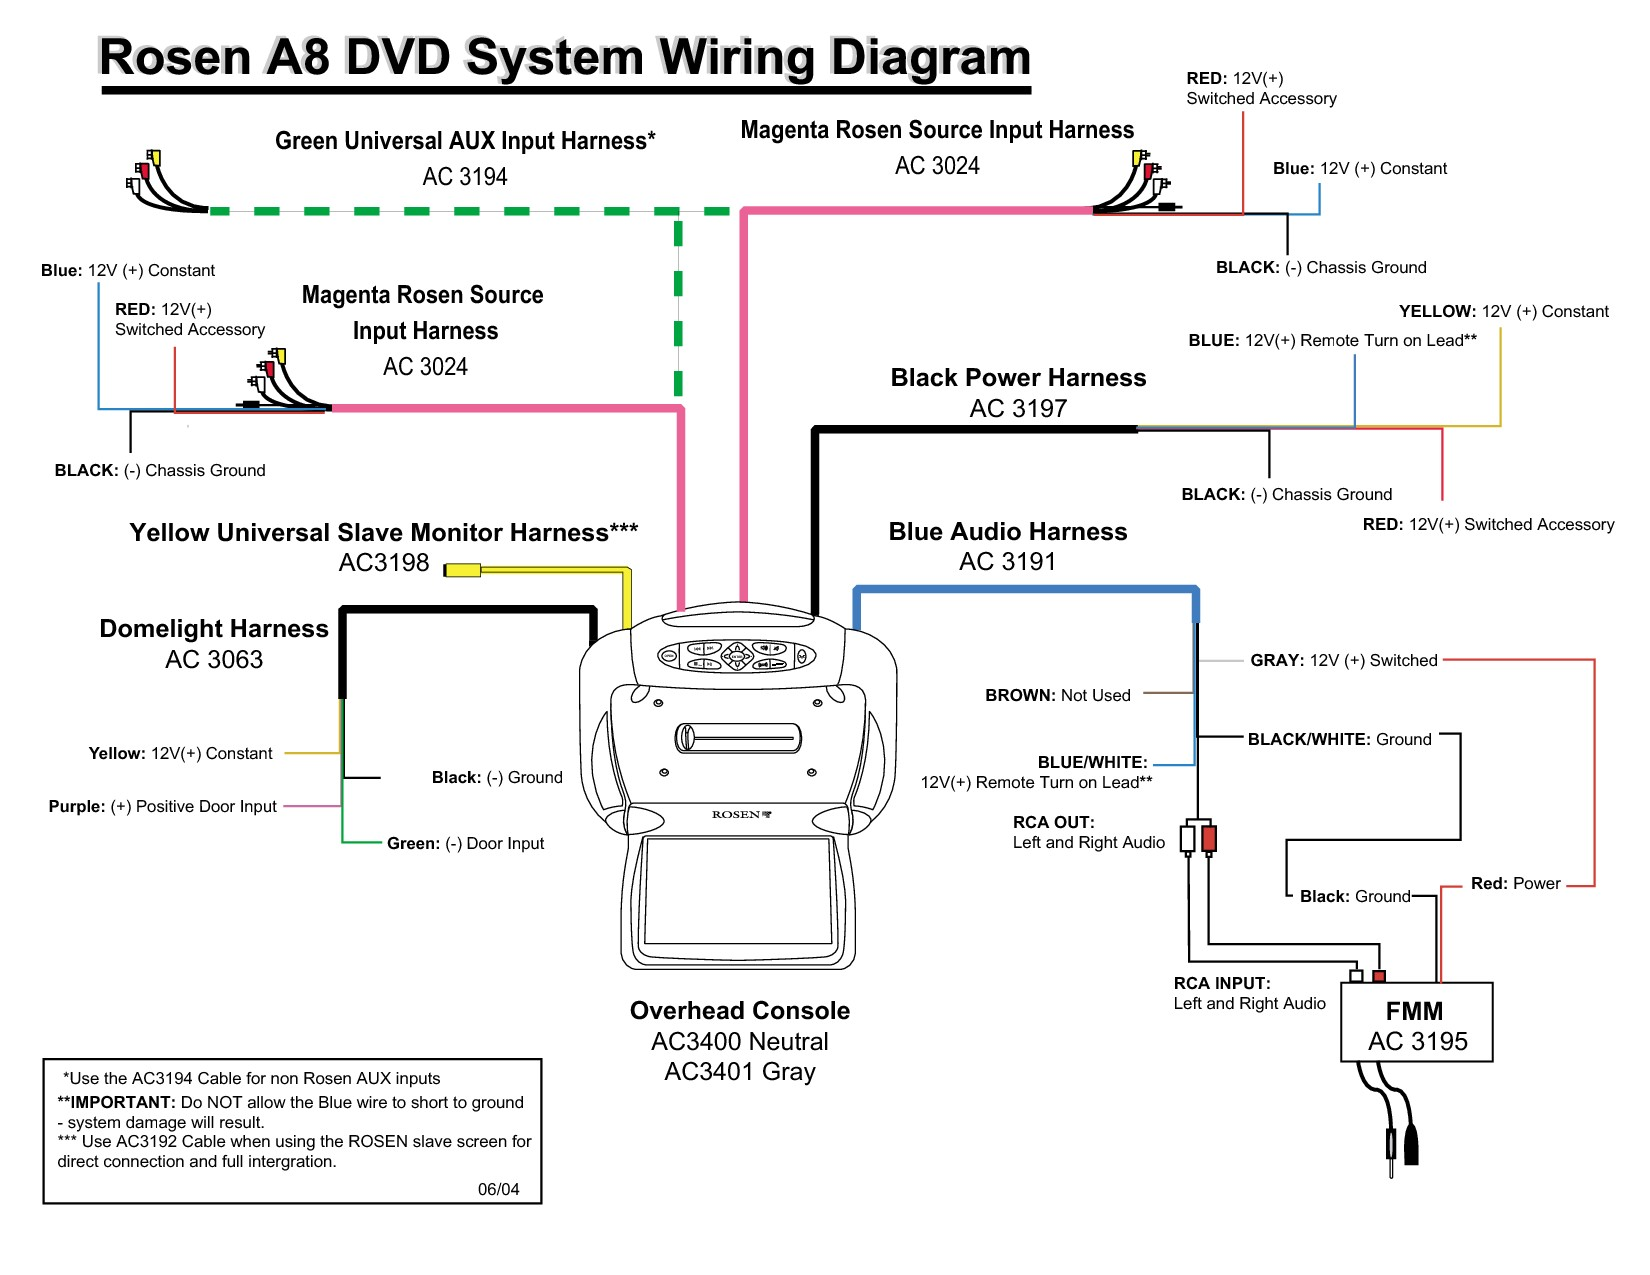 Viper 5704 Wiring Diagram from wiringall.com